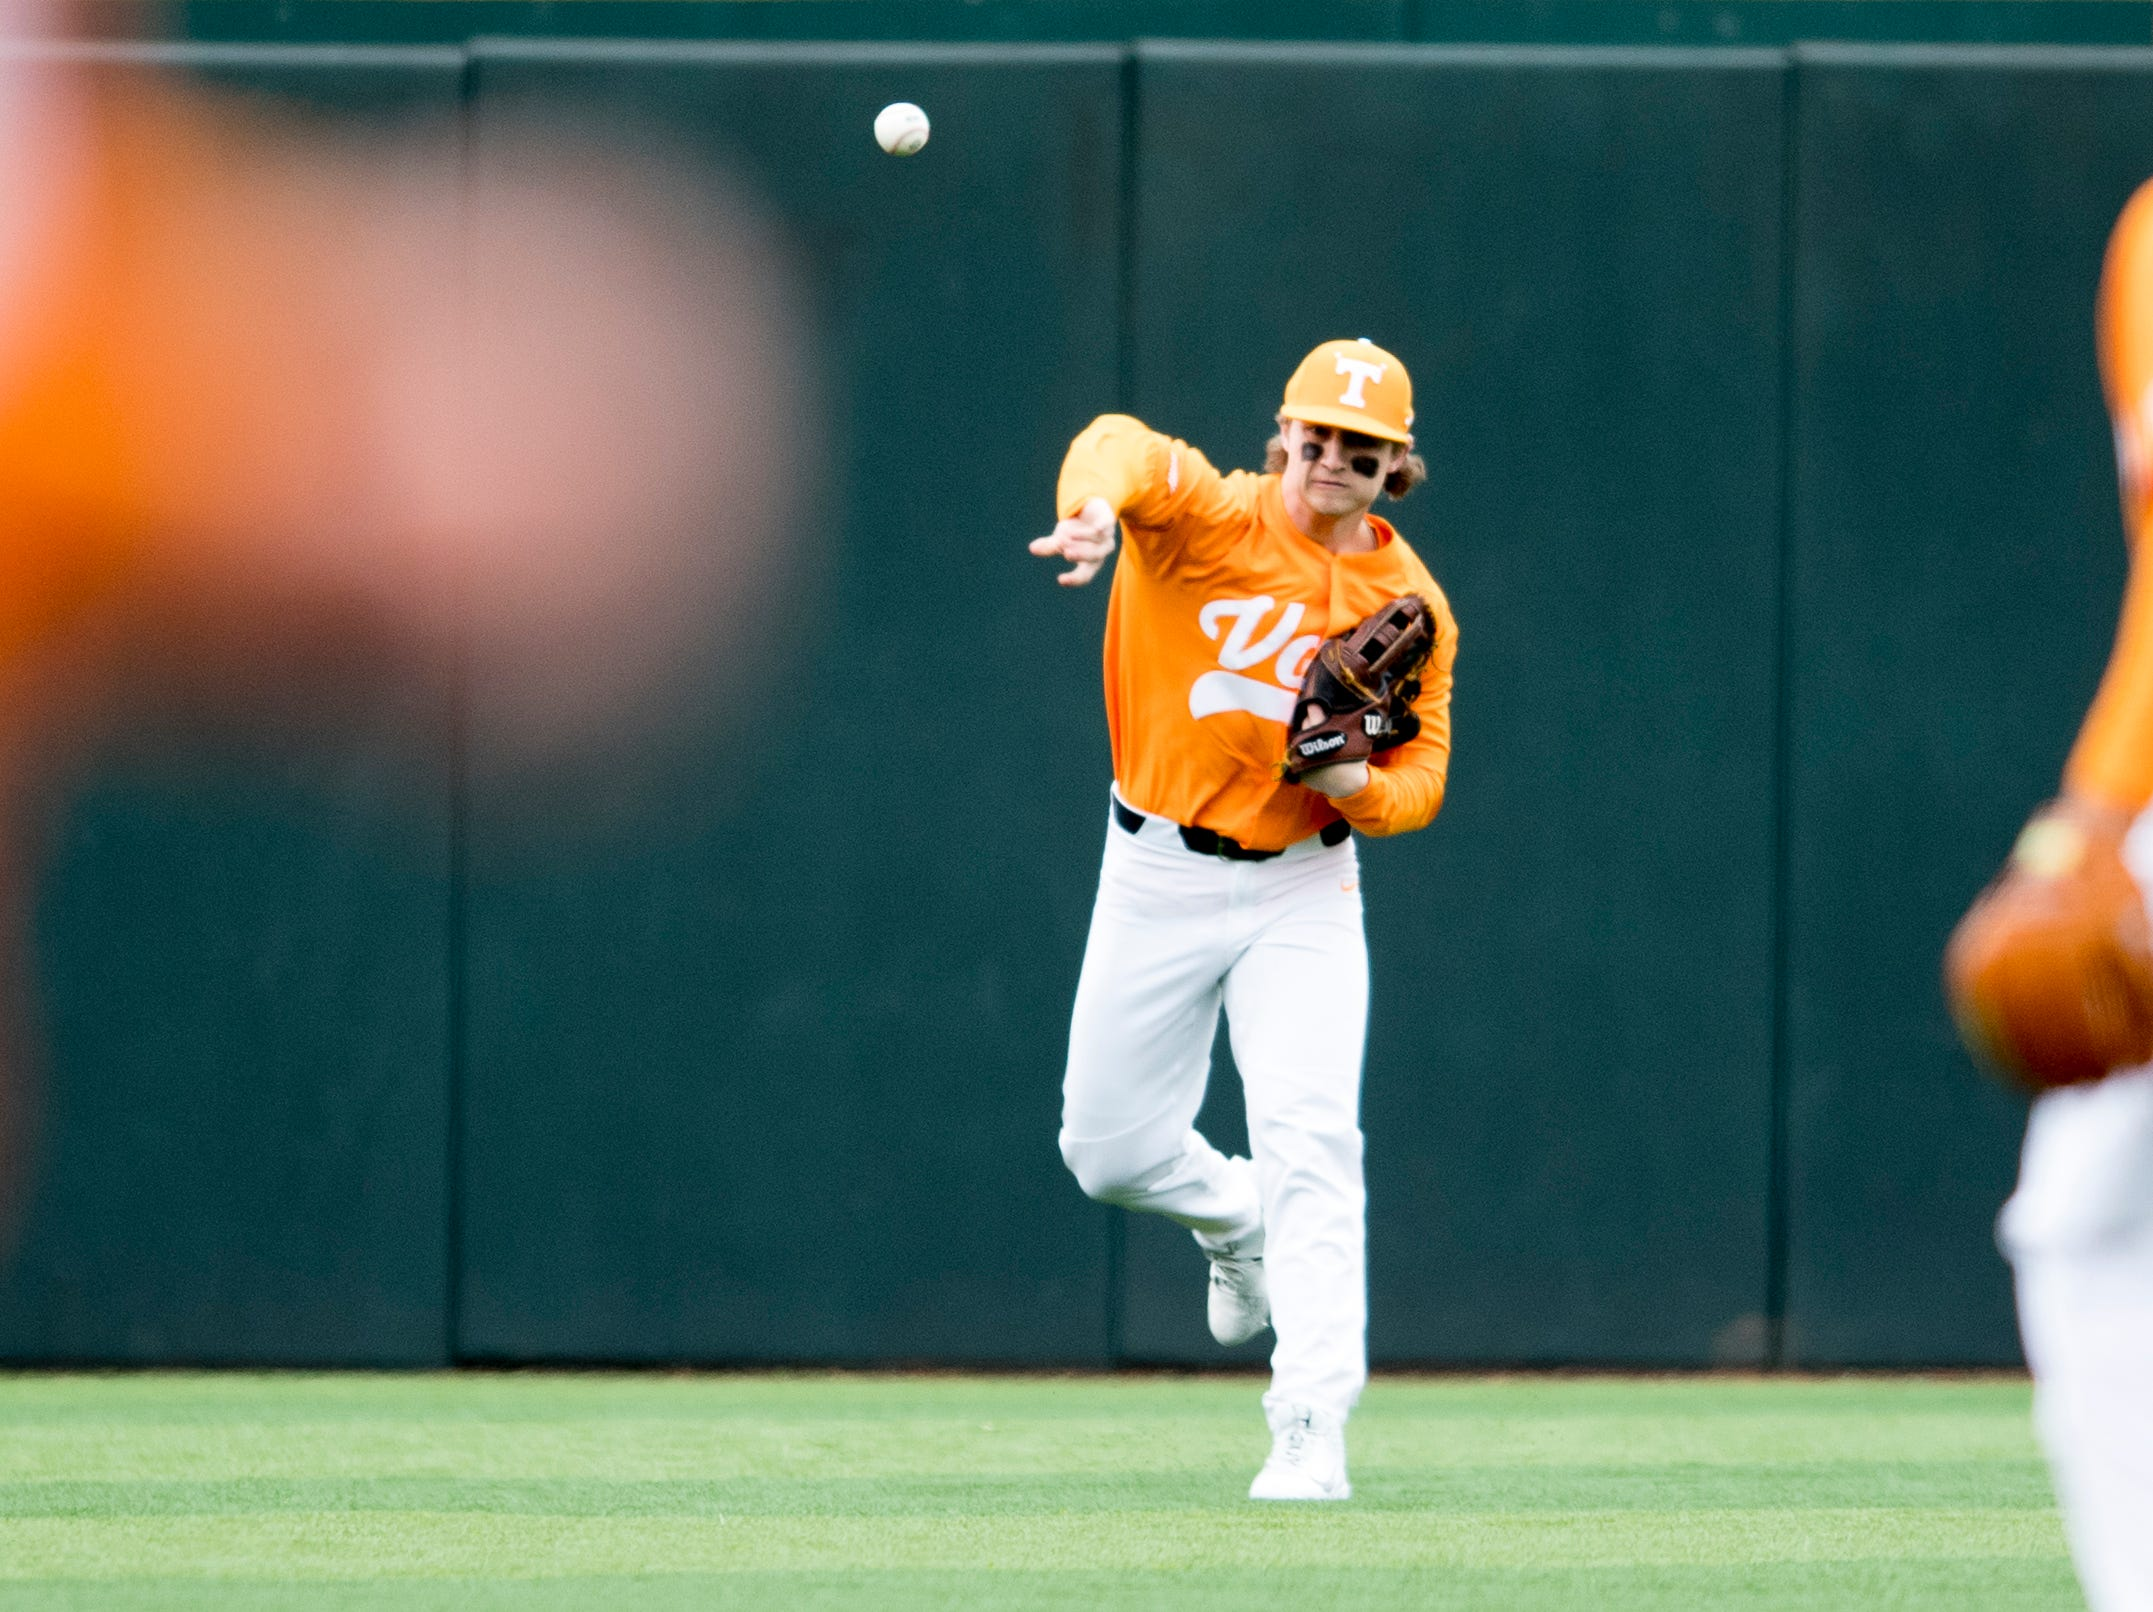 Tennessee outfielder Evan Russell (6) throws towards the infield during a Tennessee baseball home opener game against Appalachian State at Lindsey Nelson Stadium in Knoxville, Tennessee on Saturday, February 16, 2019.